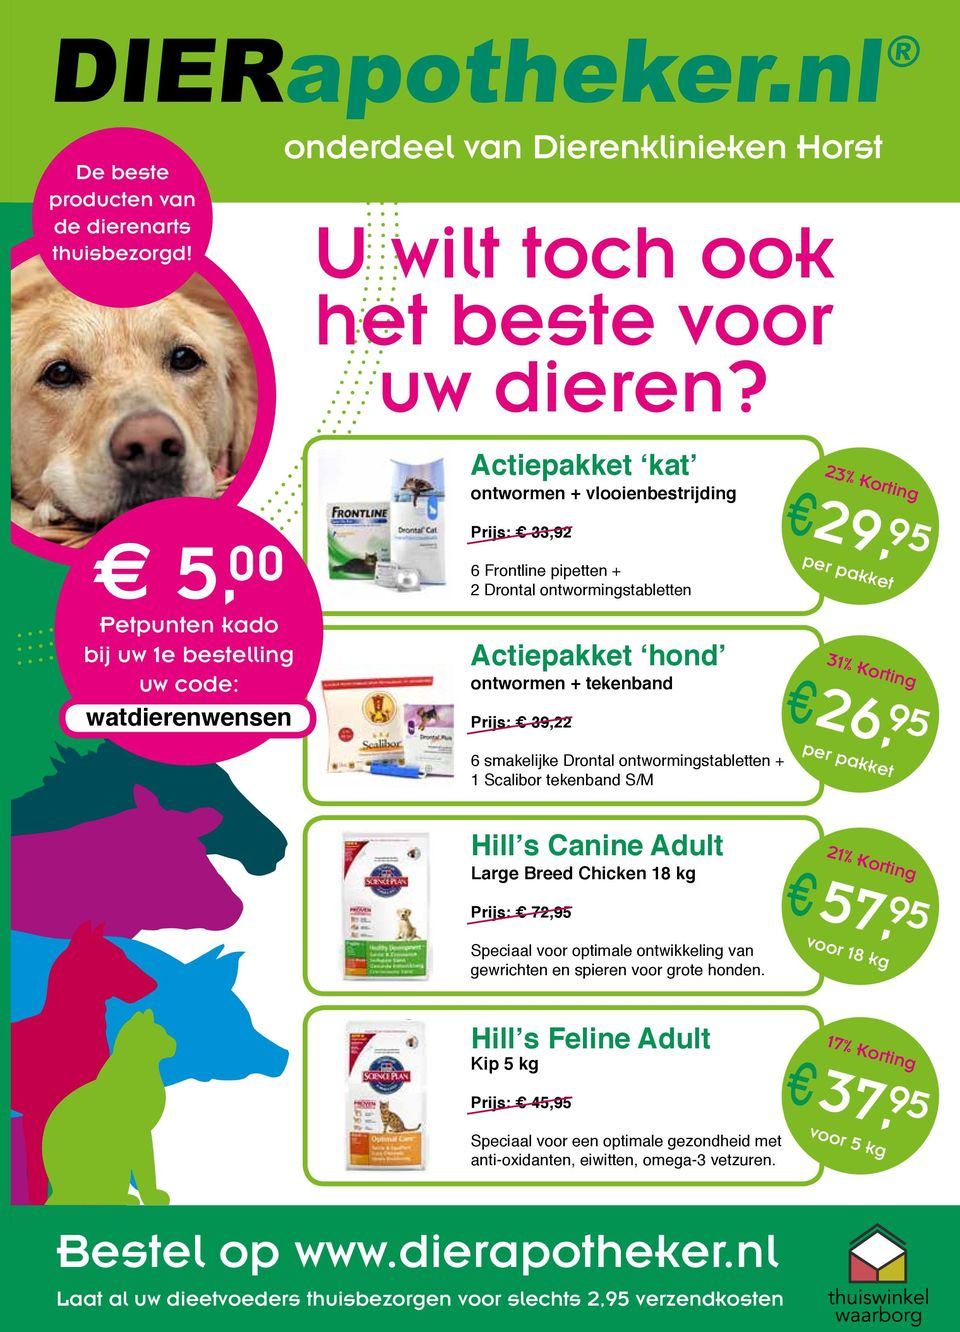 hond extra ontwormen